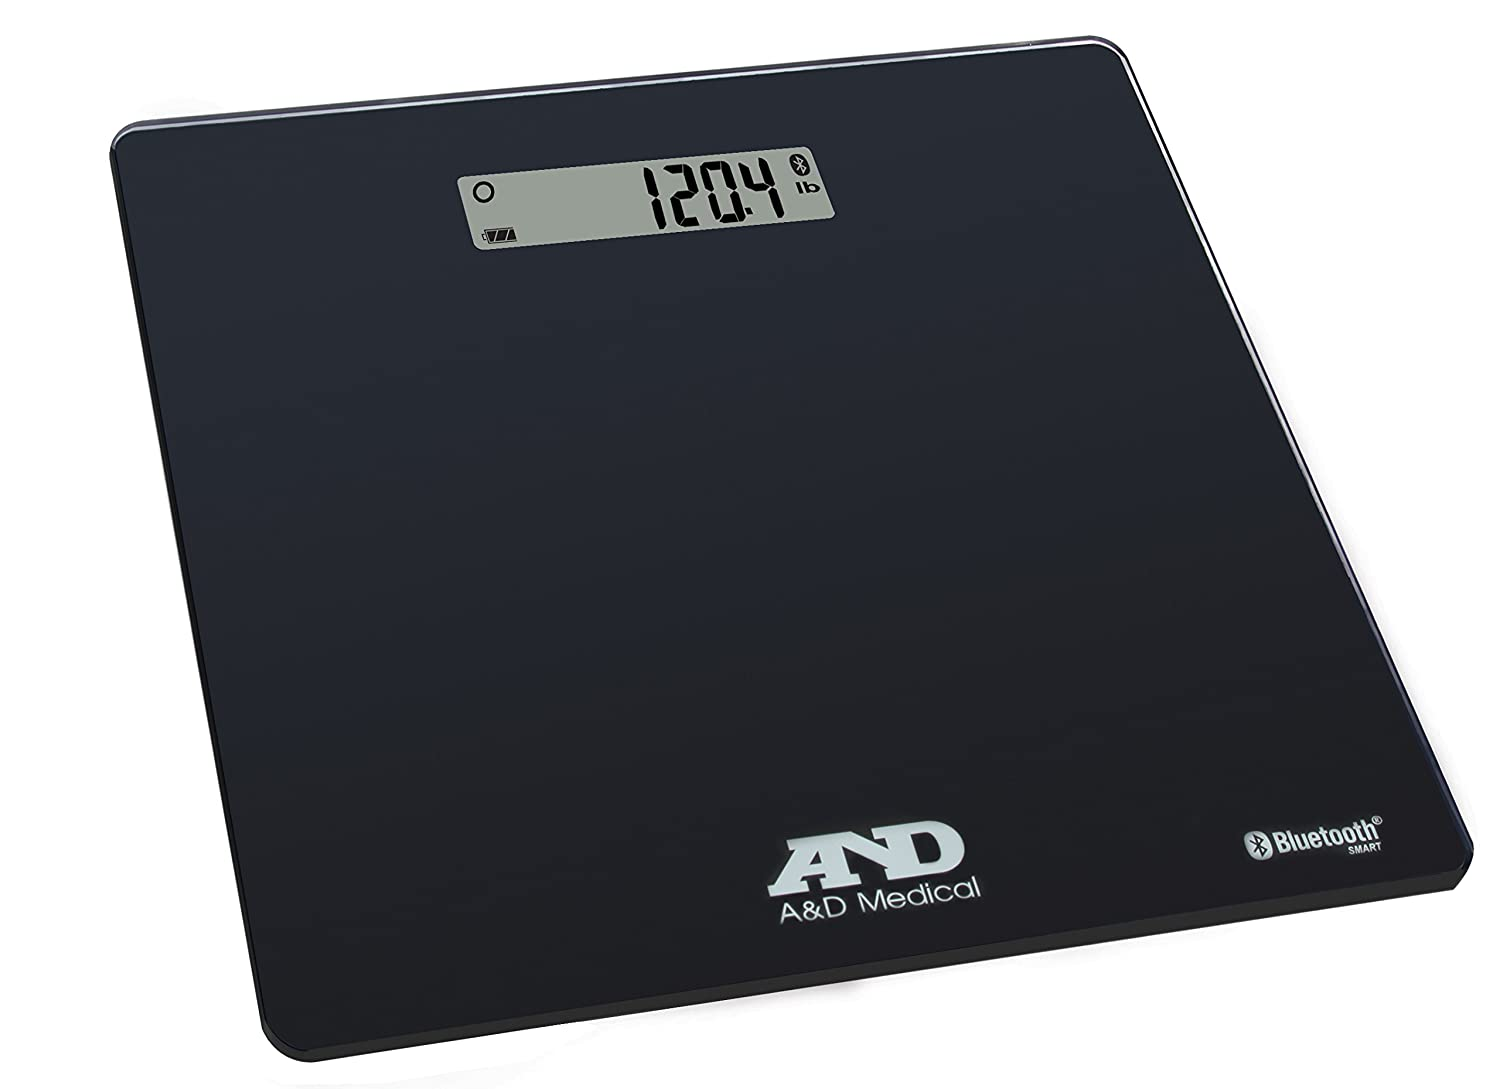 CDM product A&D Medical Bluetooth Wireless Bathroom Weight Scale (UC-352CNBLE) big image